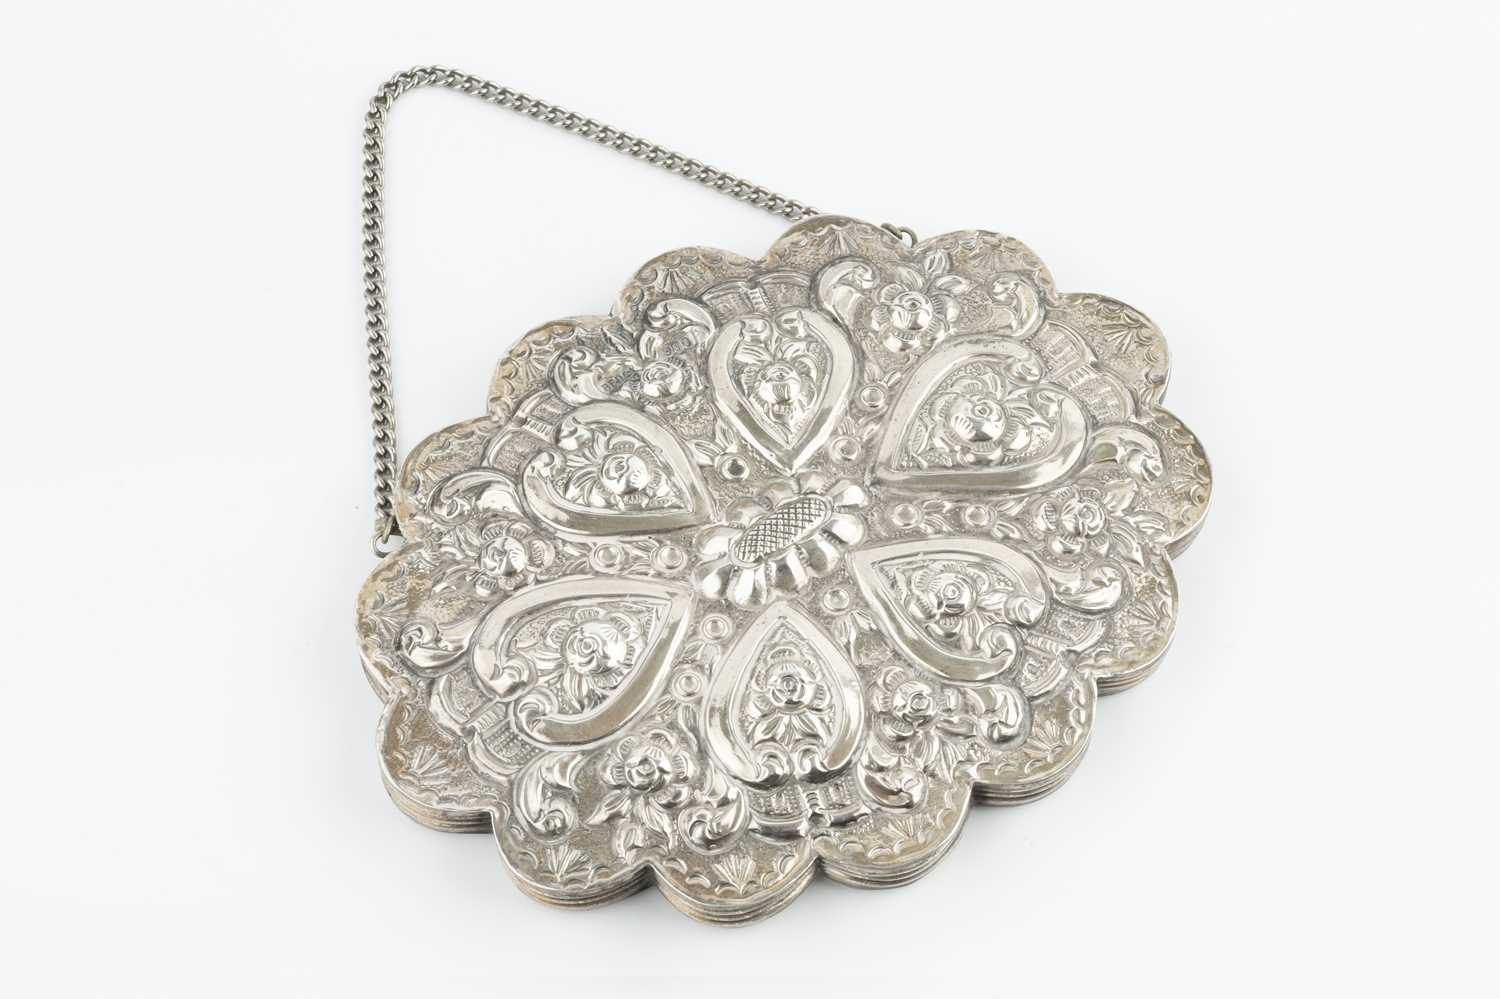 A Continental silver small hanging mirror, of lobed oval outline, embossed with flowers and foliage,